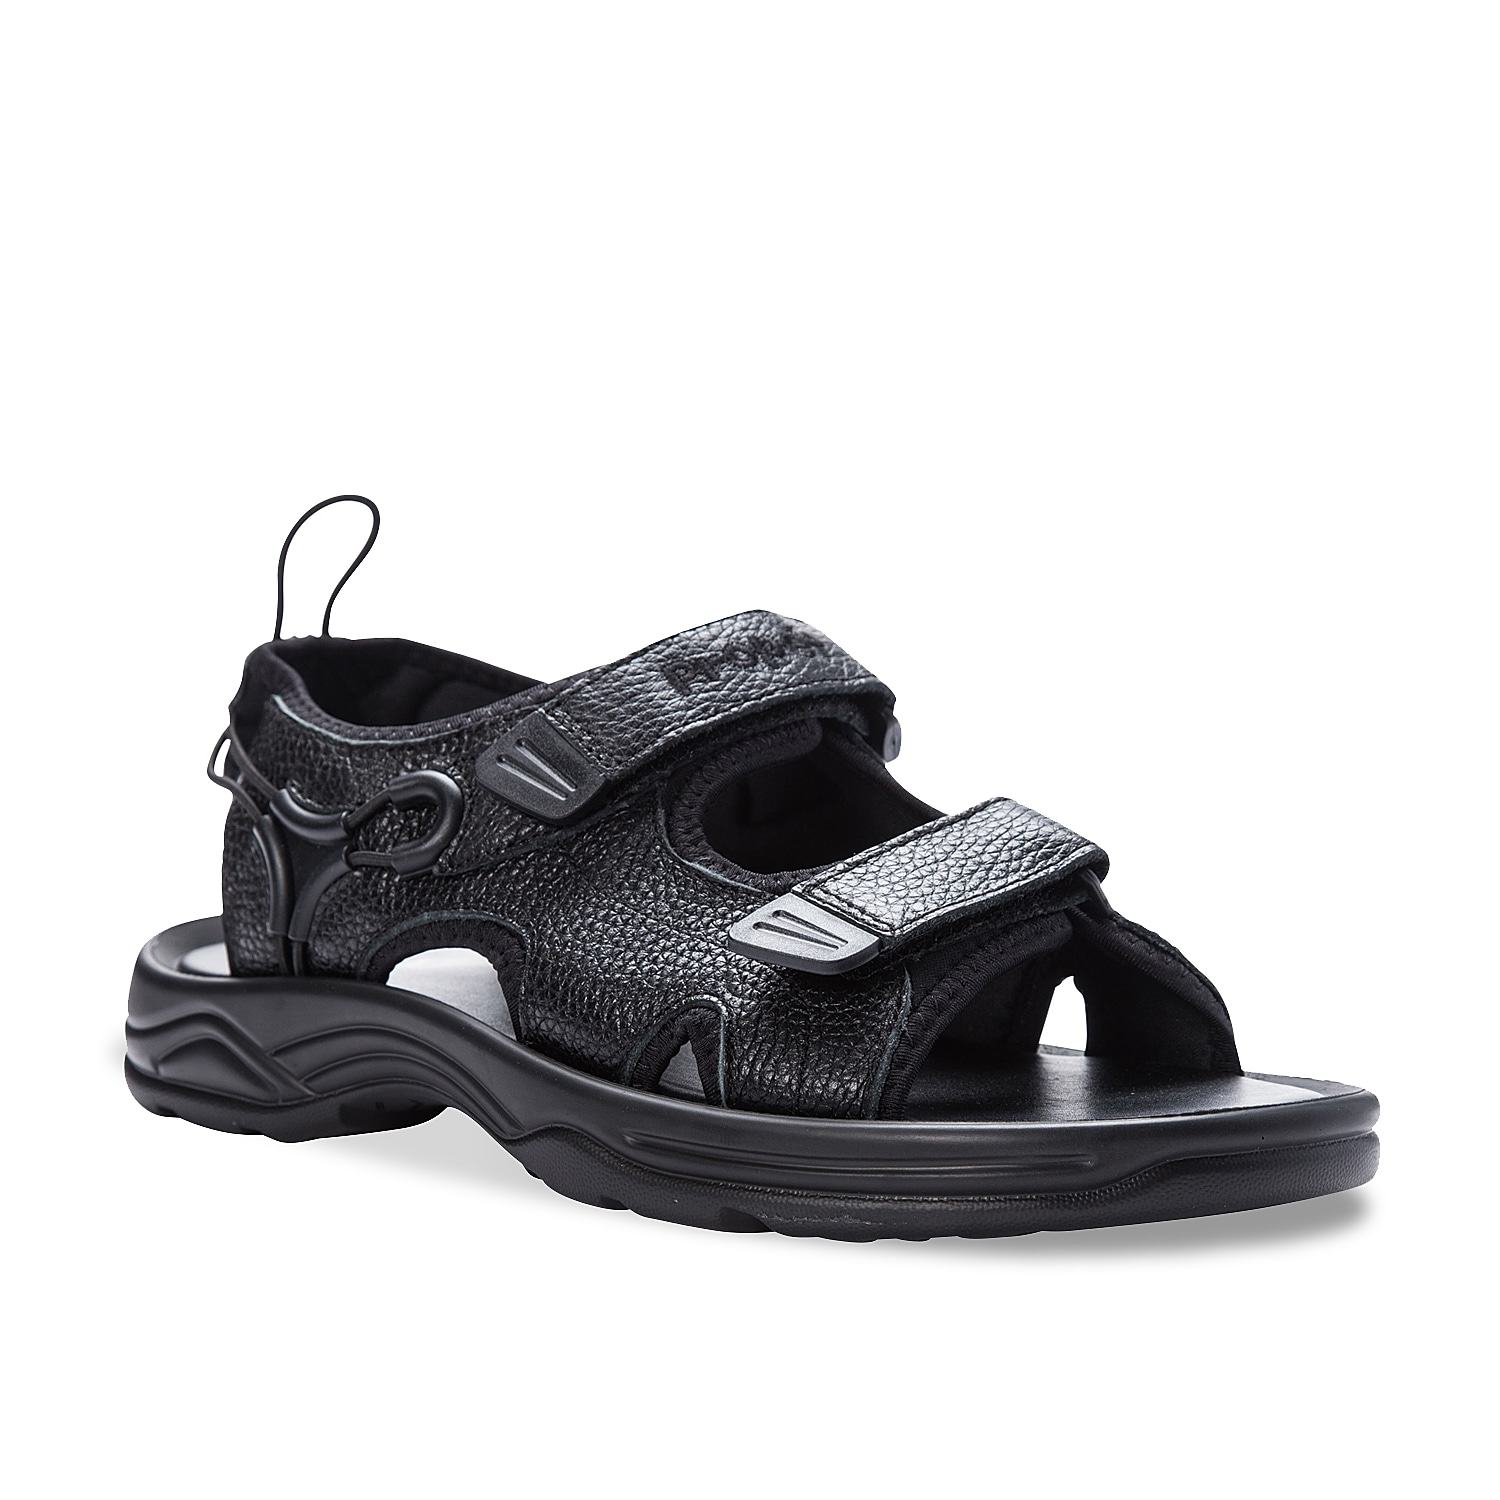 Take a stroll in the back or relax on the patio in the Surfwalker II sandals from Propet. This pair features a durable leather design for lasting wear and adjustable straps to ensure a stay-put fit.